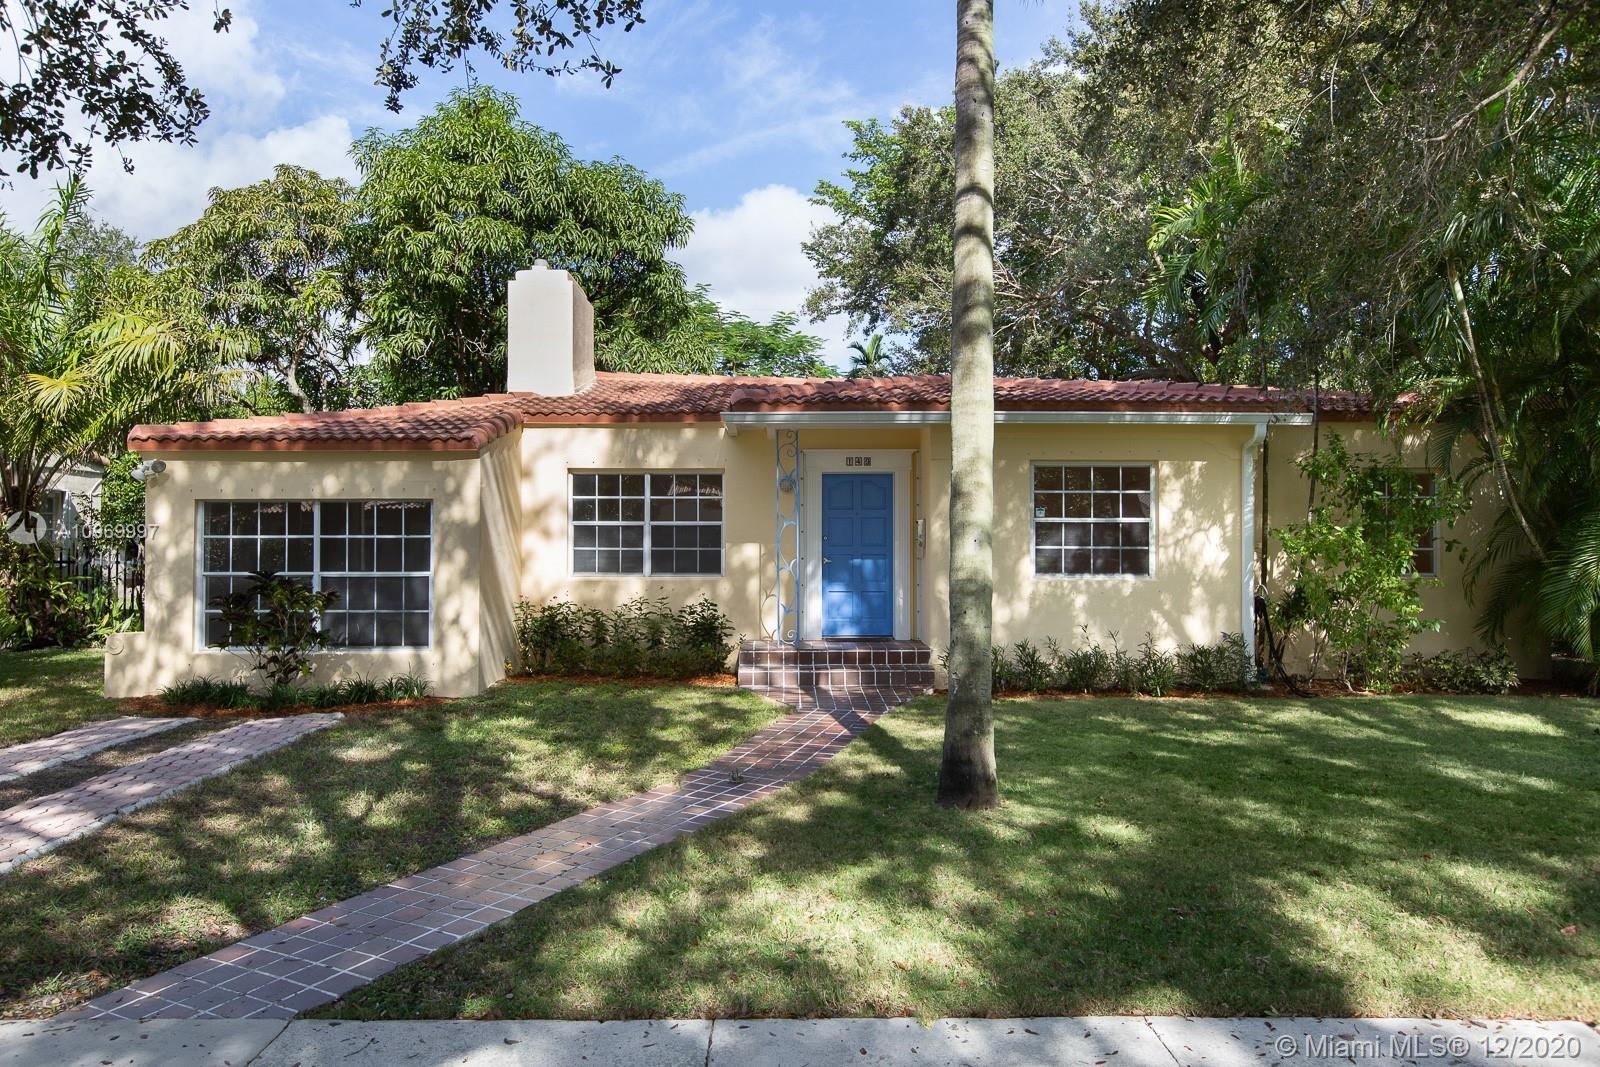 This is the type of charmer Miami Shores is famous for. Three Bedrooms, two baths, plus bonus room o